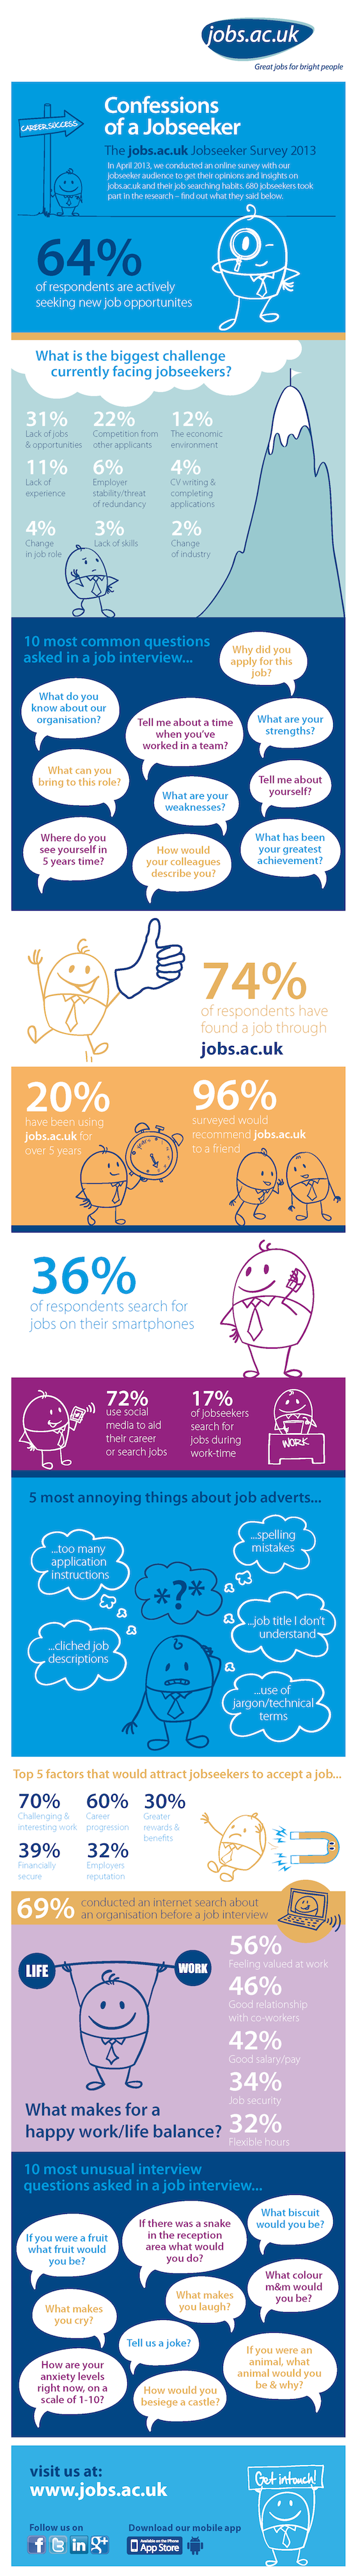 Infographic: What do jobseekers really think?